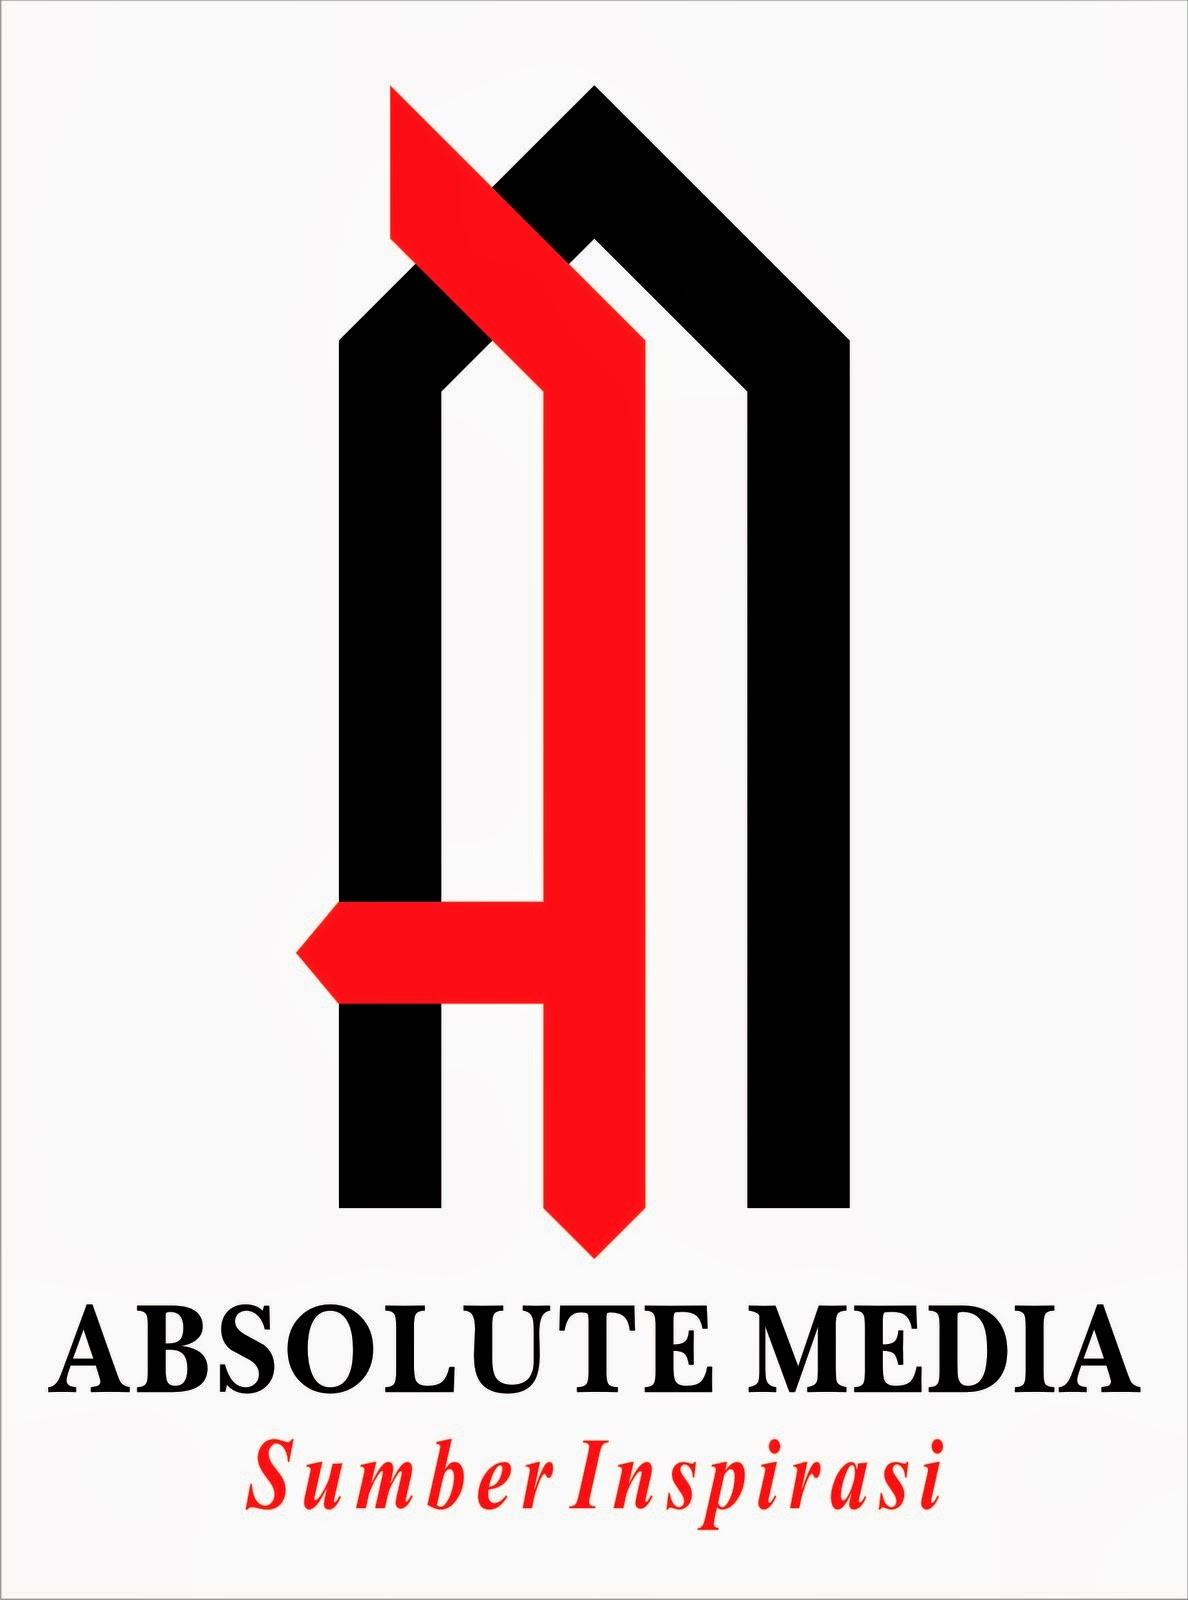 Absolute Media